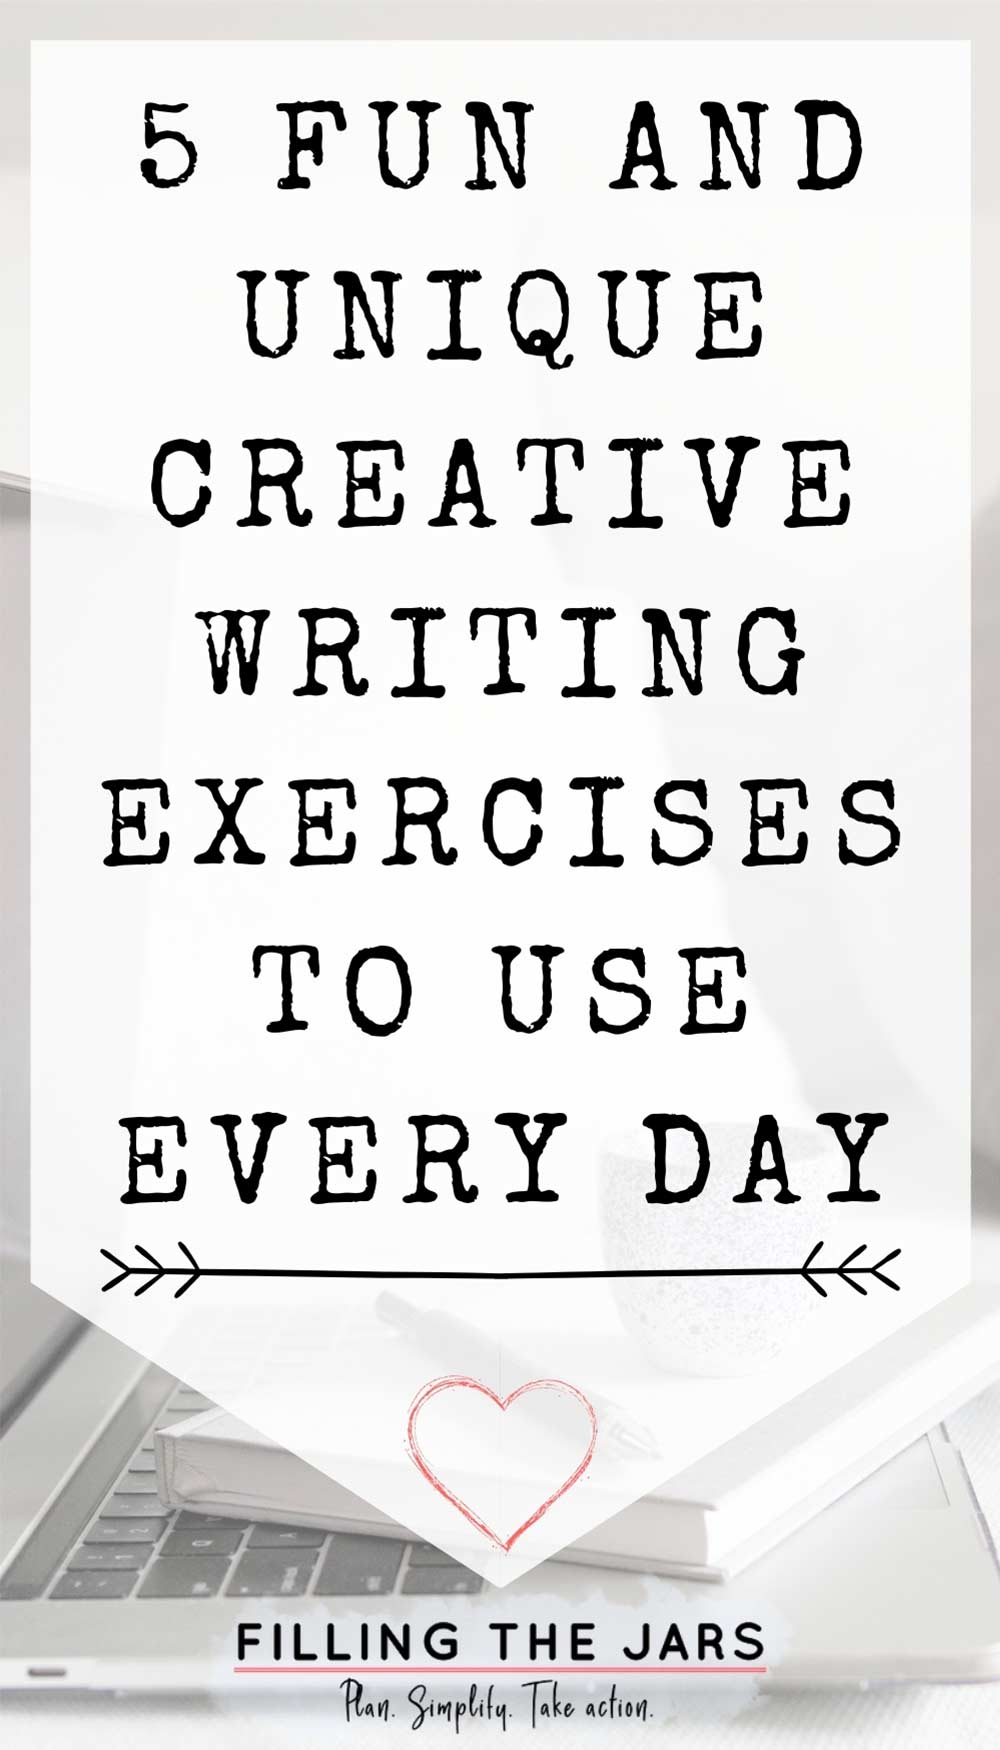 Text unique daily creative writing exercises on white background over image of journal, pen, coffee mug stacked on open laptop sitting on white couch.